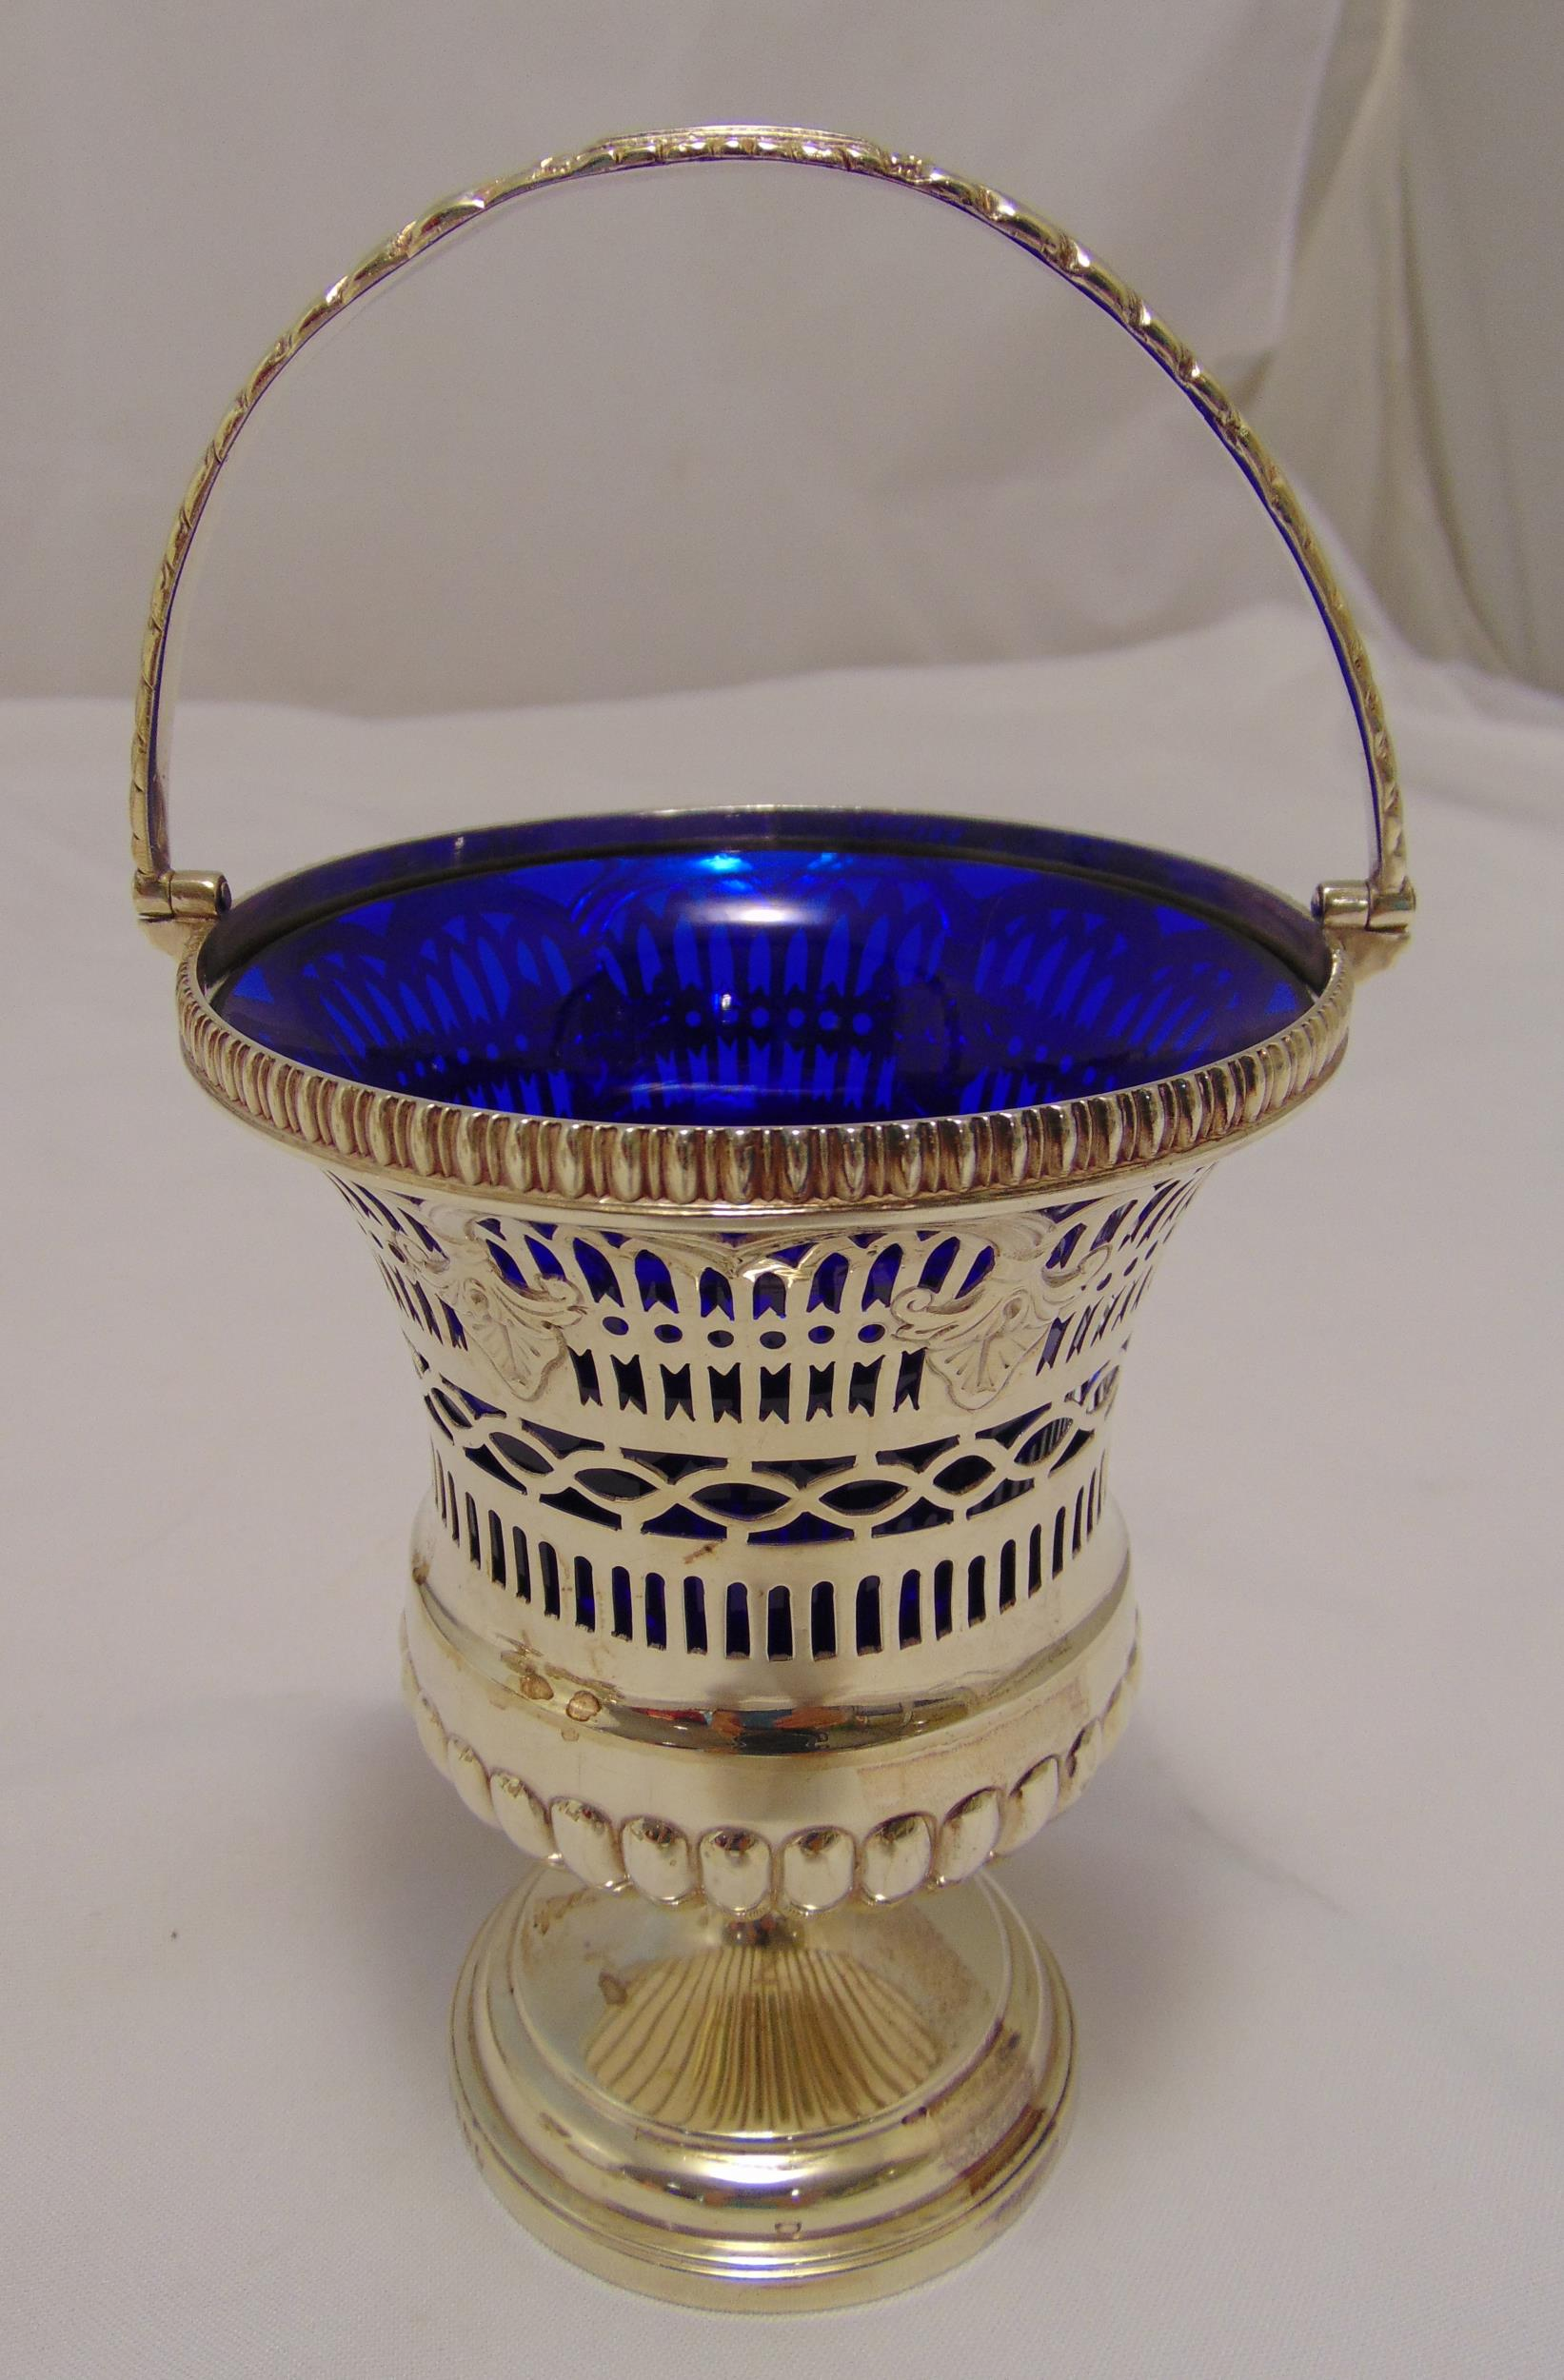 George III hallmarked silver sugar bowl of campagna form with bar pierced sides, gadrooned border